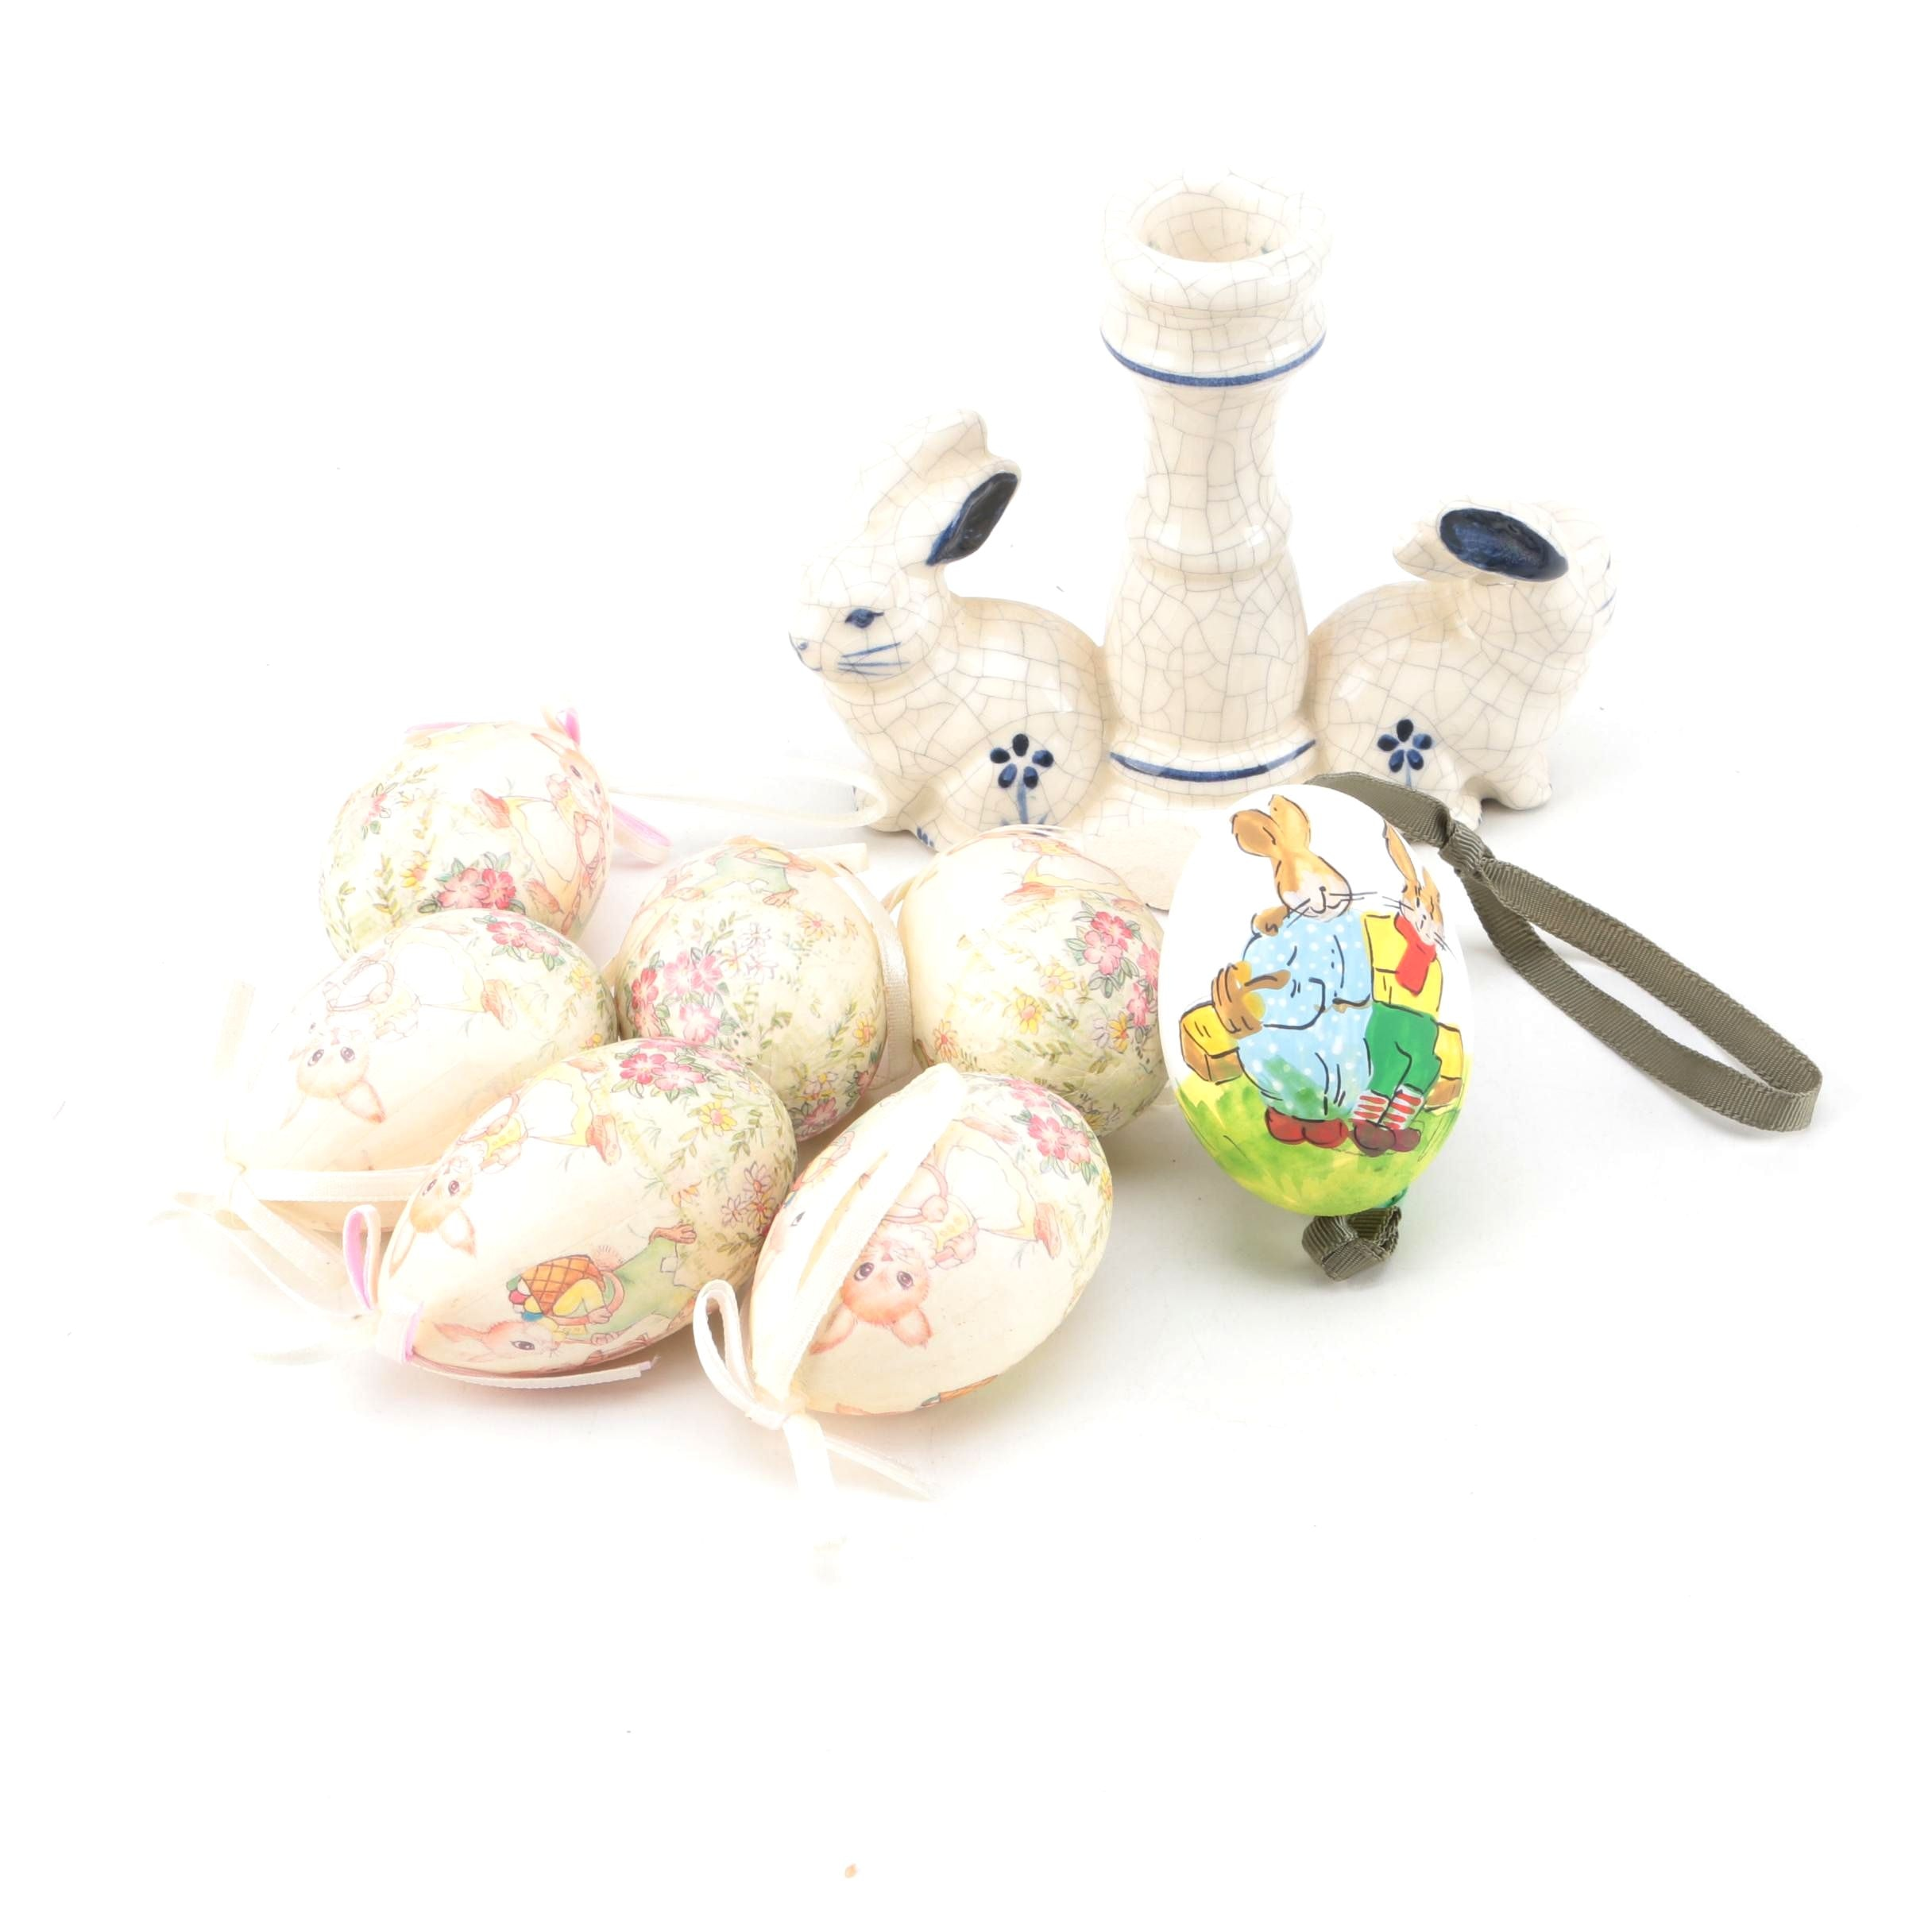 Dedham Pottery Bunny Candleholder and Easter Egg Ornaments